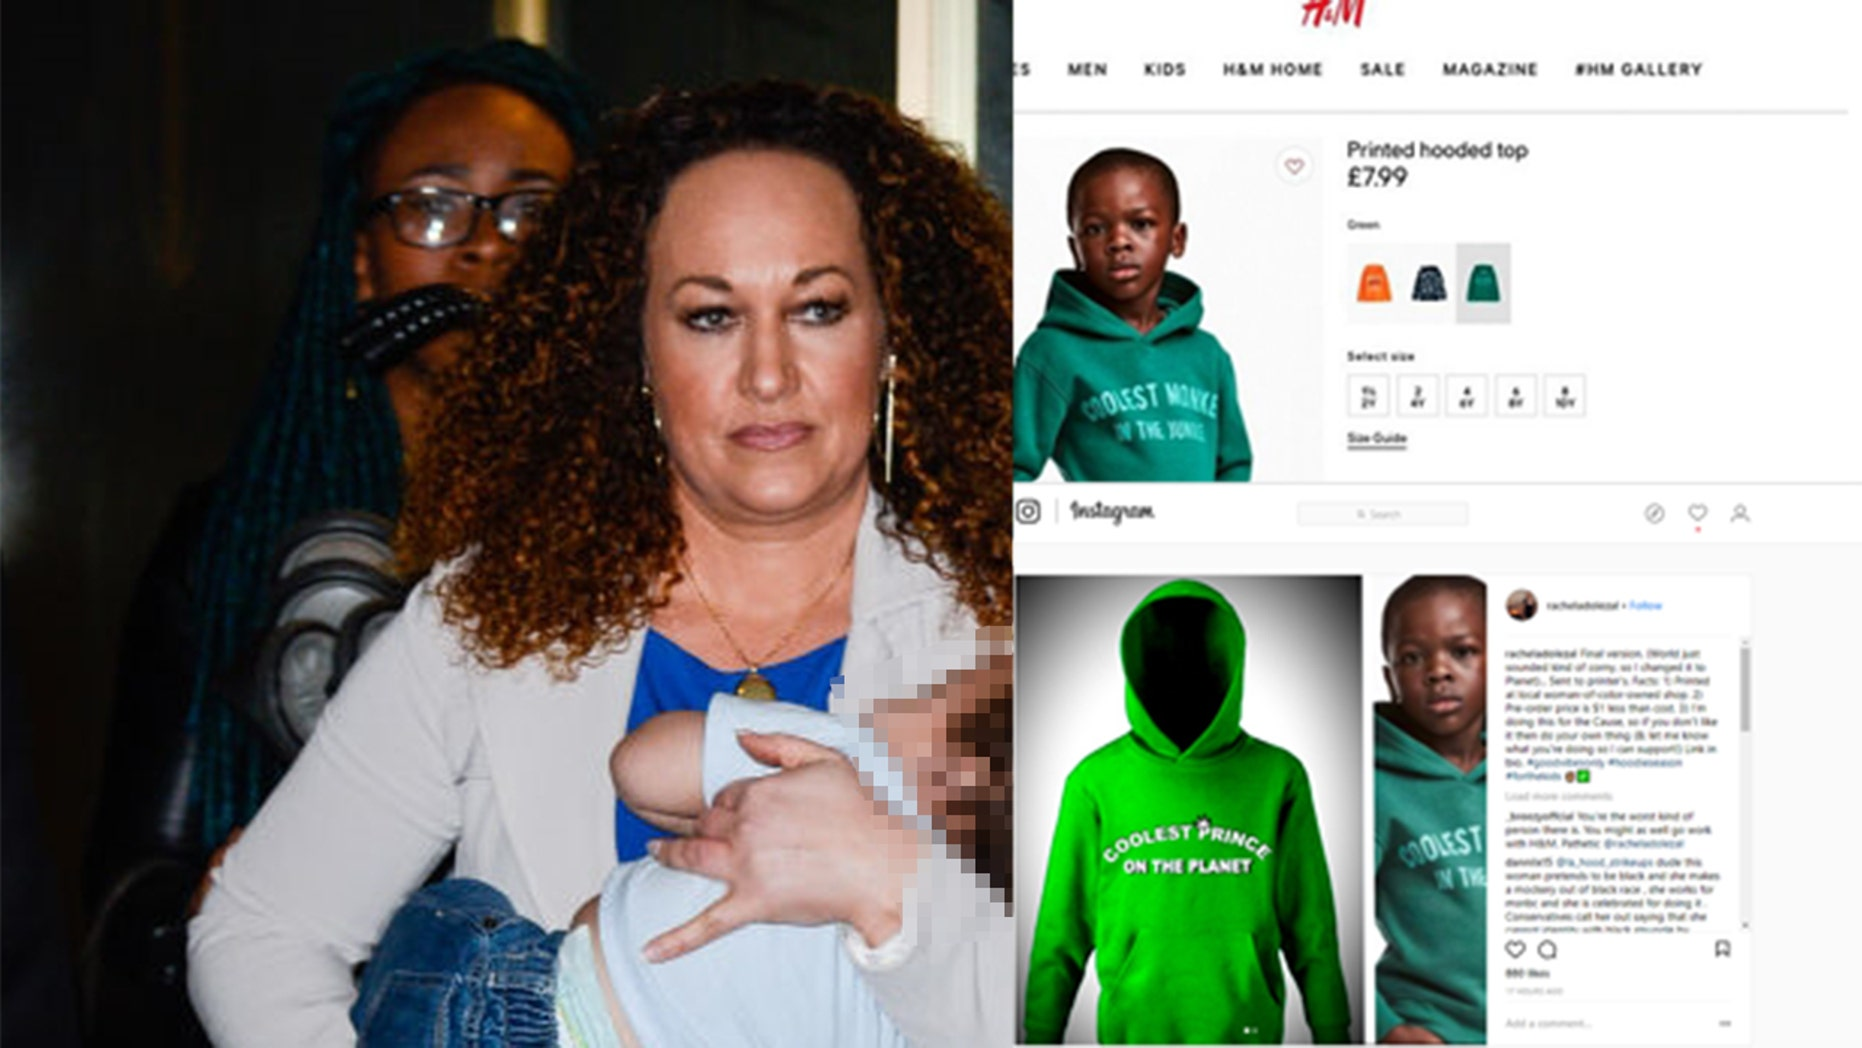 """Rachel Dolezal has created a """"protest hoodie"""" in response to a controversial H&M sweatshirt, but it's not going over well on social media."""